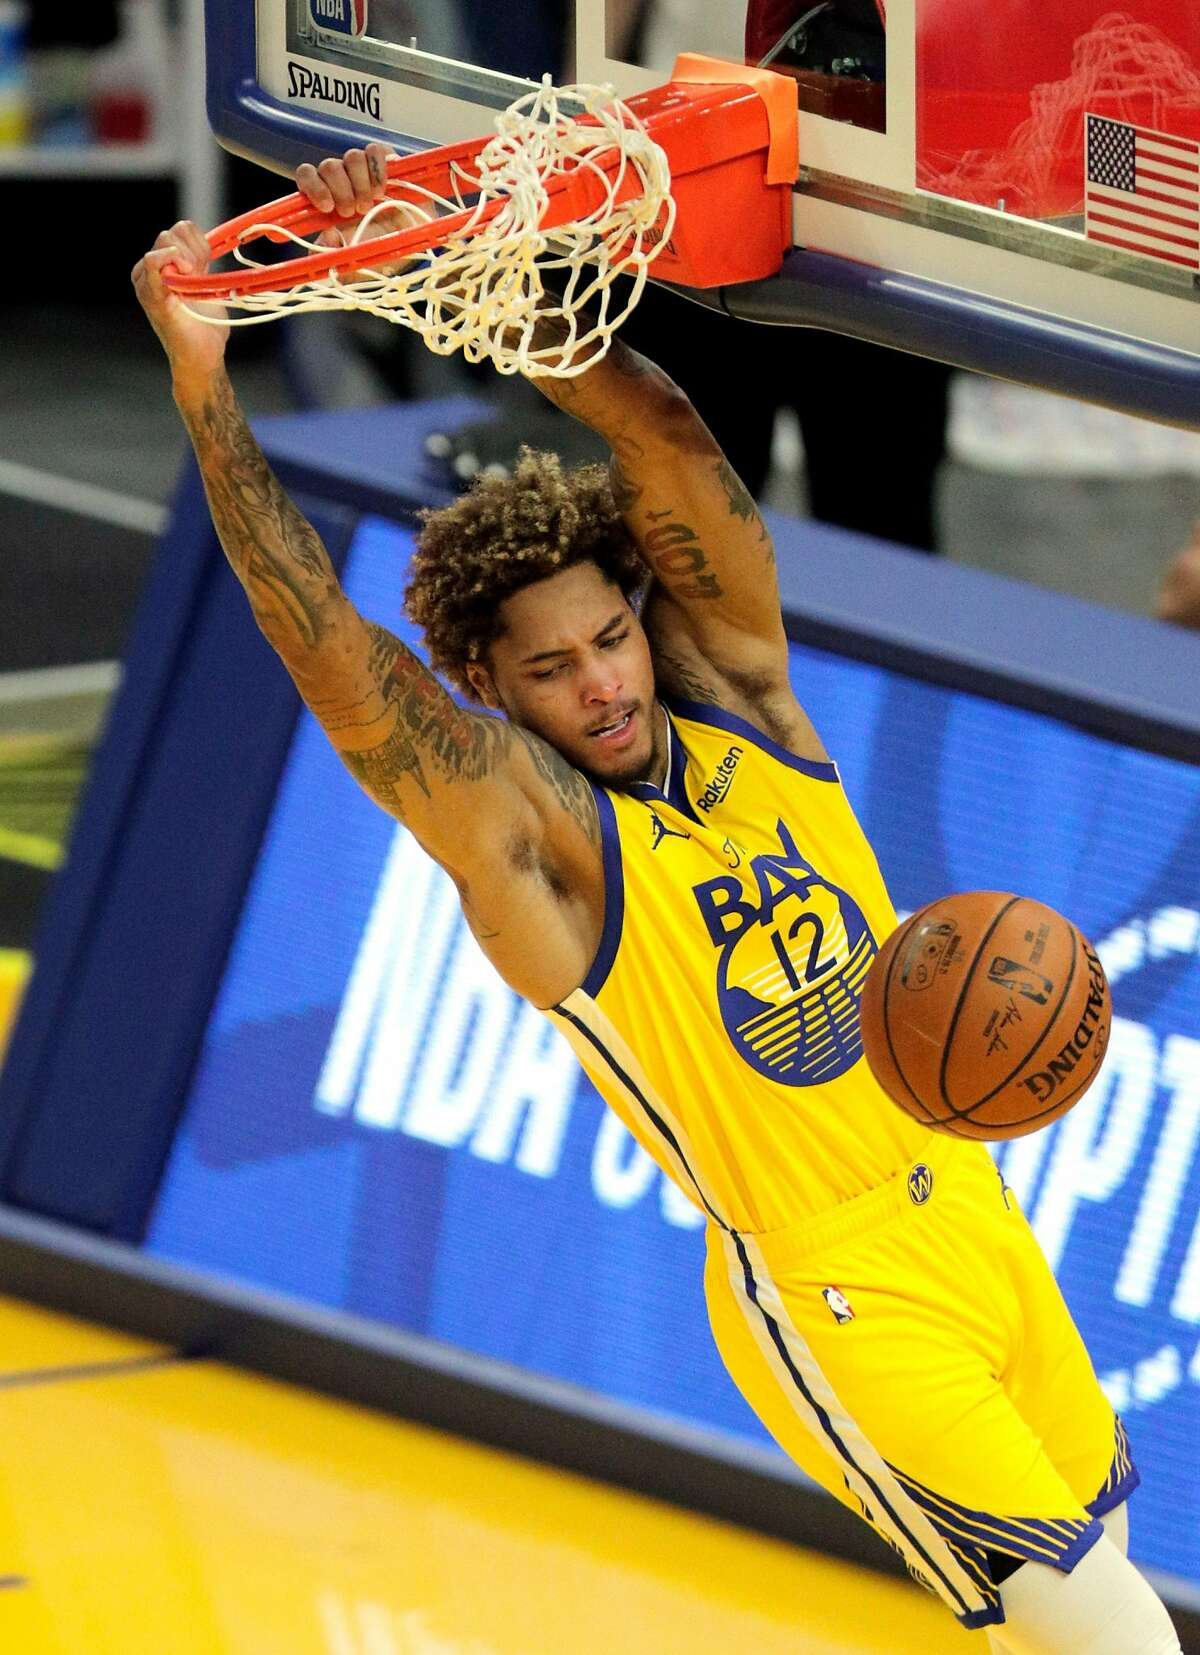 Kelly Oubre Jr. (12) dunks in the second half as the Golden State Warriors played the Denver Nuggets at Chase Center in San Francisco, Calif., on Friday, April 23, 2021. The COVID-19 pandemic stopped all live events including sports and only recently have venues been allowed to have limited attendance.